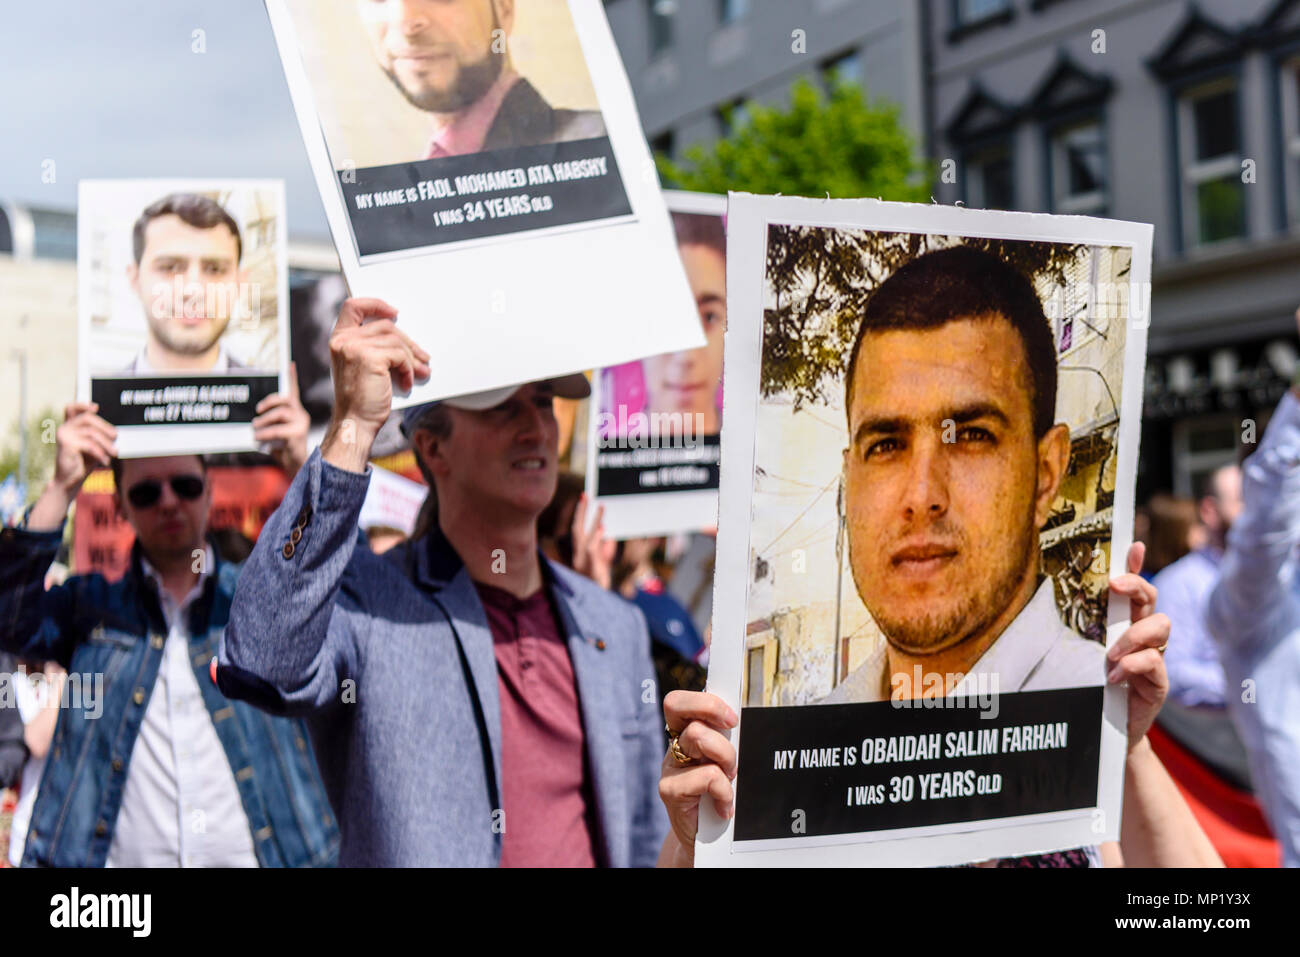 Belfast, Northern Ireland, 19/05/2018 - Ireland Palestine Solidarity Campaign hold a protest march against the killing of 53 unarmed Palestinians in Occupied Israel who were protesting againt President Trump's decision to move the American Embassy in Israel to Jerusalem. - Stock Image